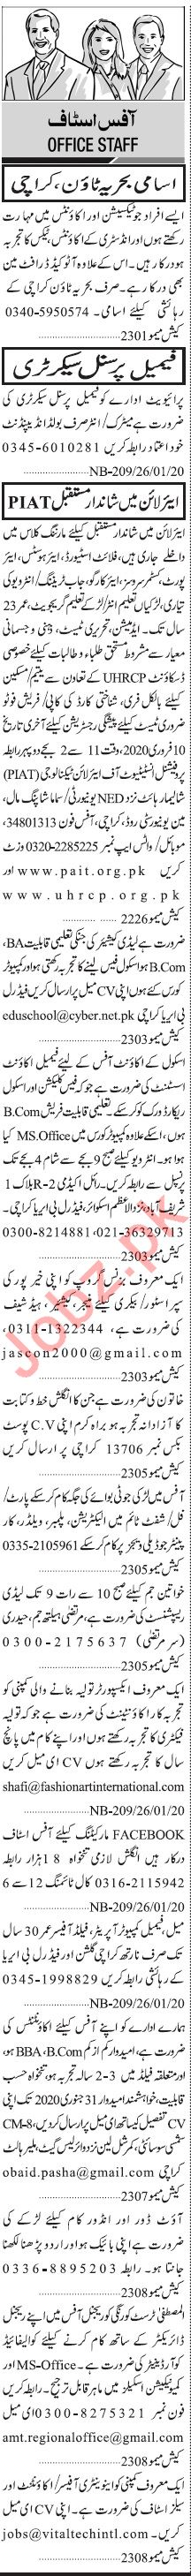 Jang Sunday Classified Ads 26 Jan 2020 for Office Staff